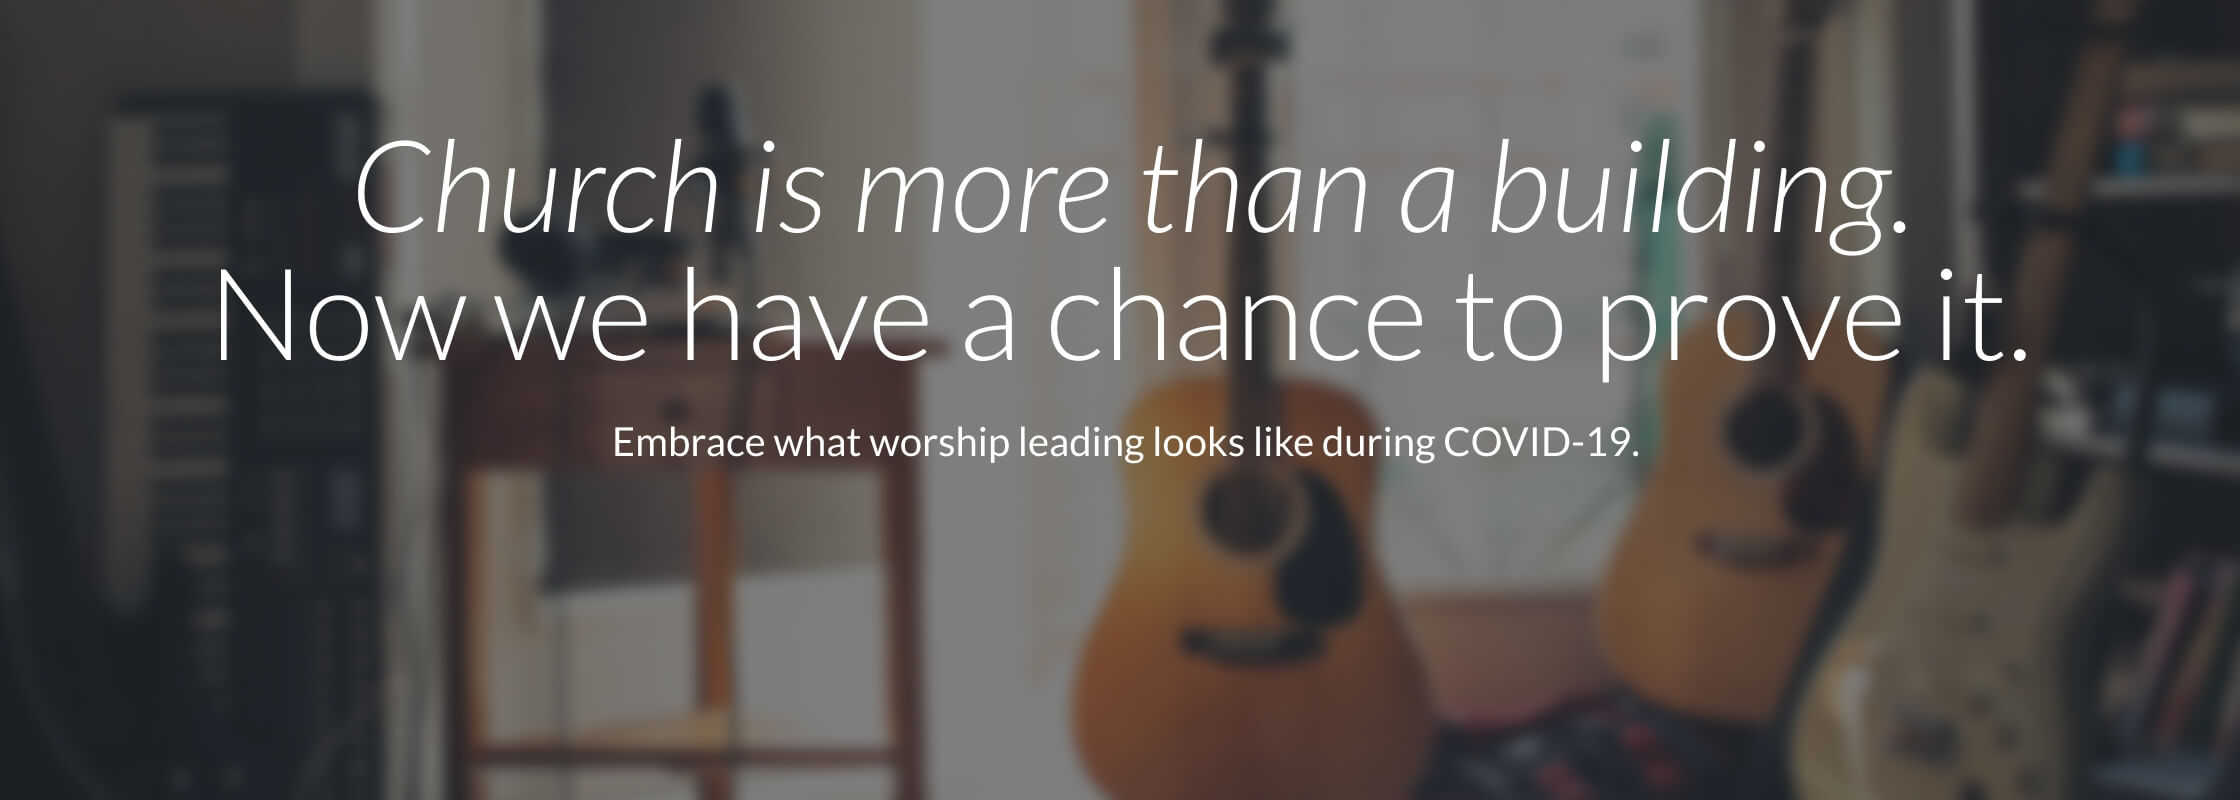 Church is more than a building.